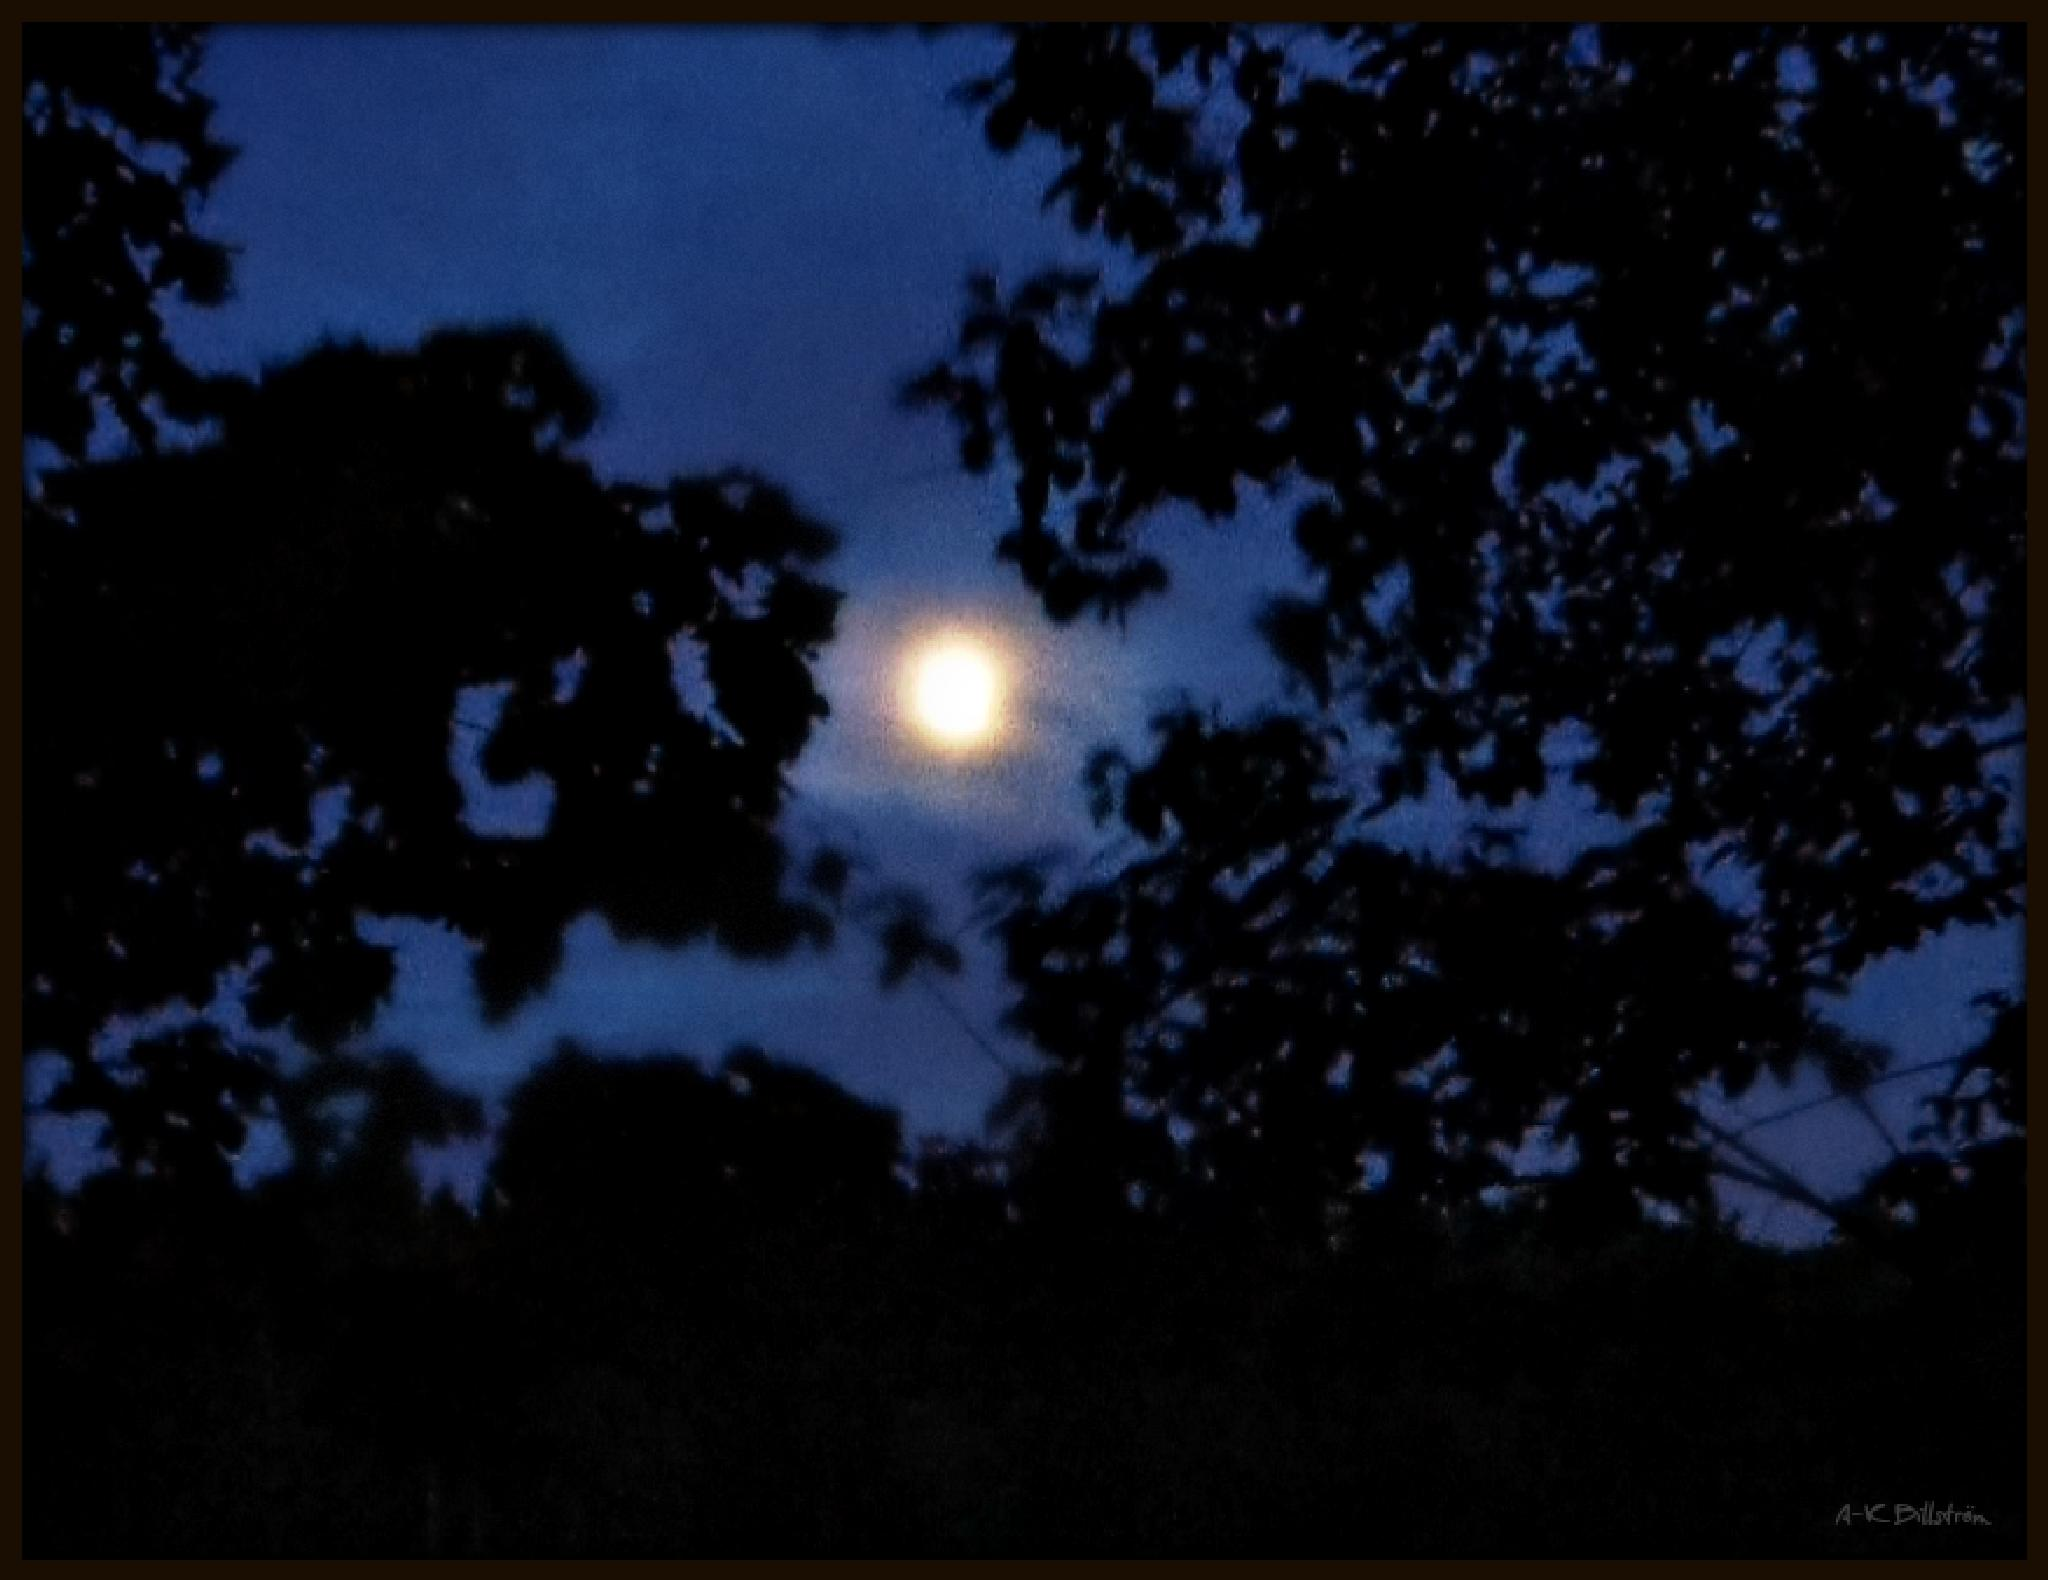 Mothers Day Moon May 2015 by A-K Billström